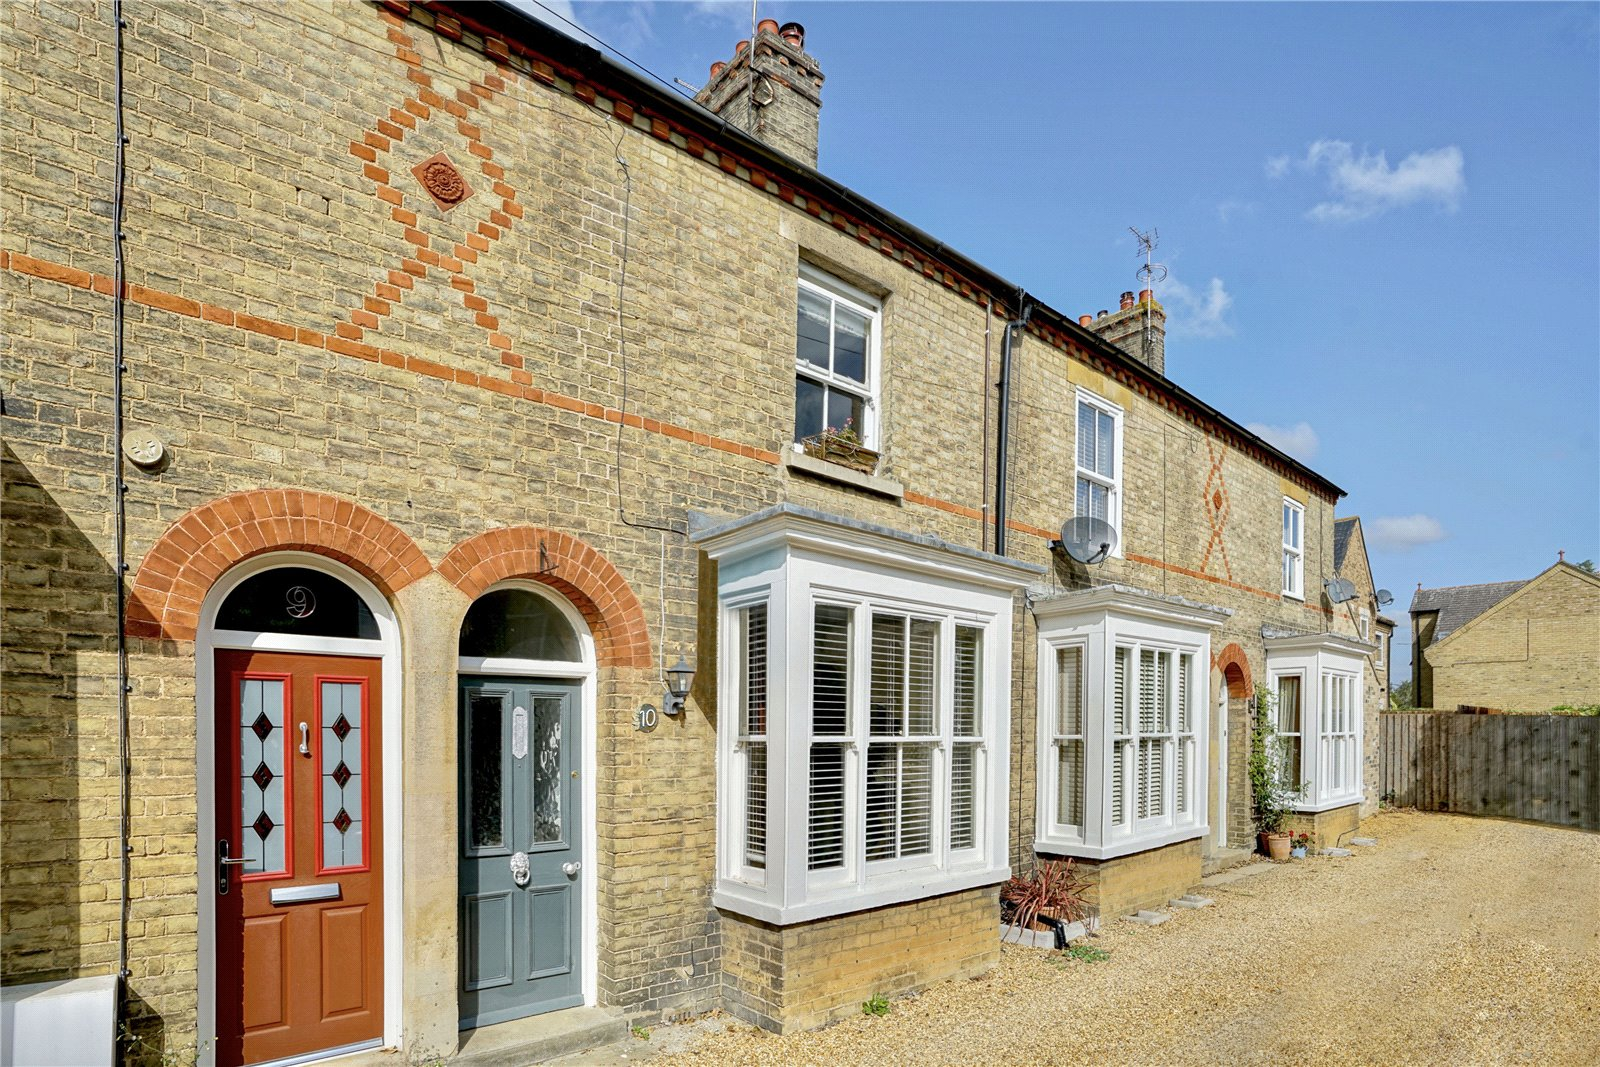 2 bed house for sale in St. Ives, PE27 5PJ, PE27